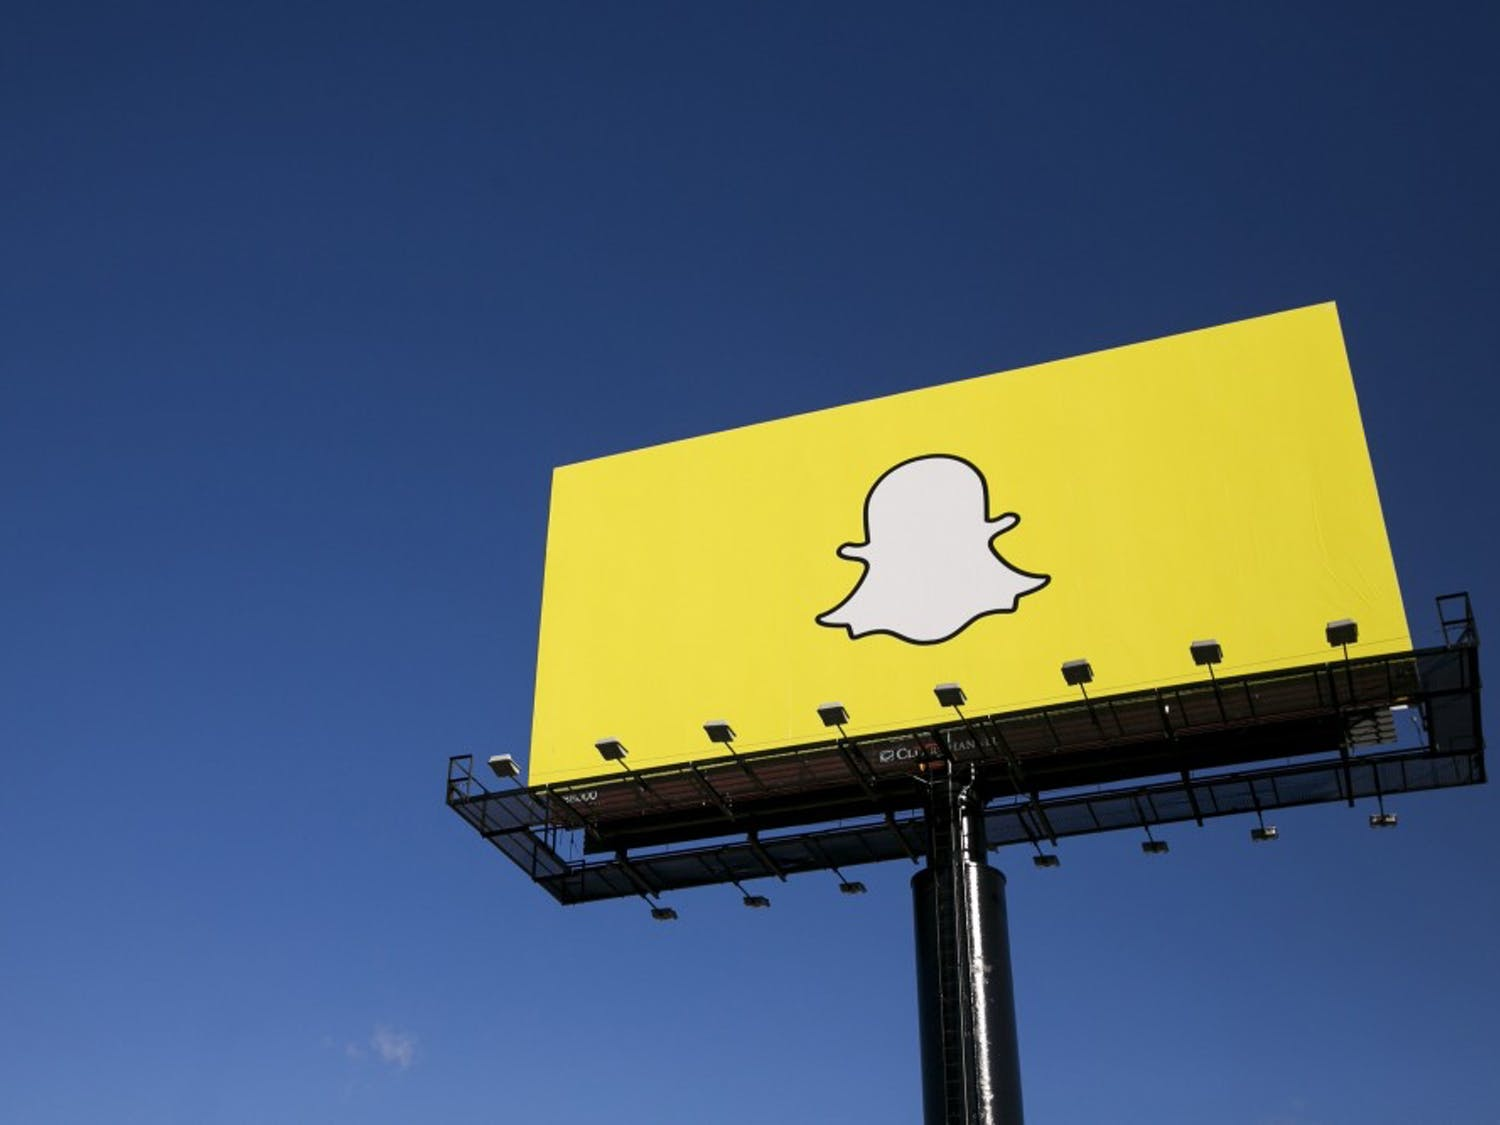 """Snapchat's explanation for its mysterious billboards is as vague as the ads: """"Fun and awareness."""" Above, one of its billboards in Richfield, Minn., in October. (Kristoffer Tripplaar/Sipa USA/TNS)"""